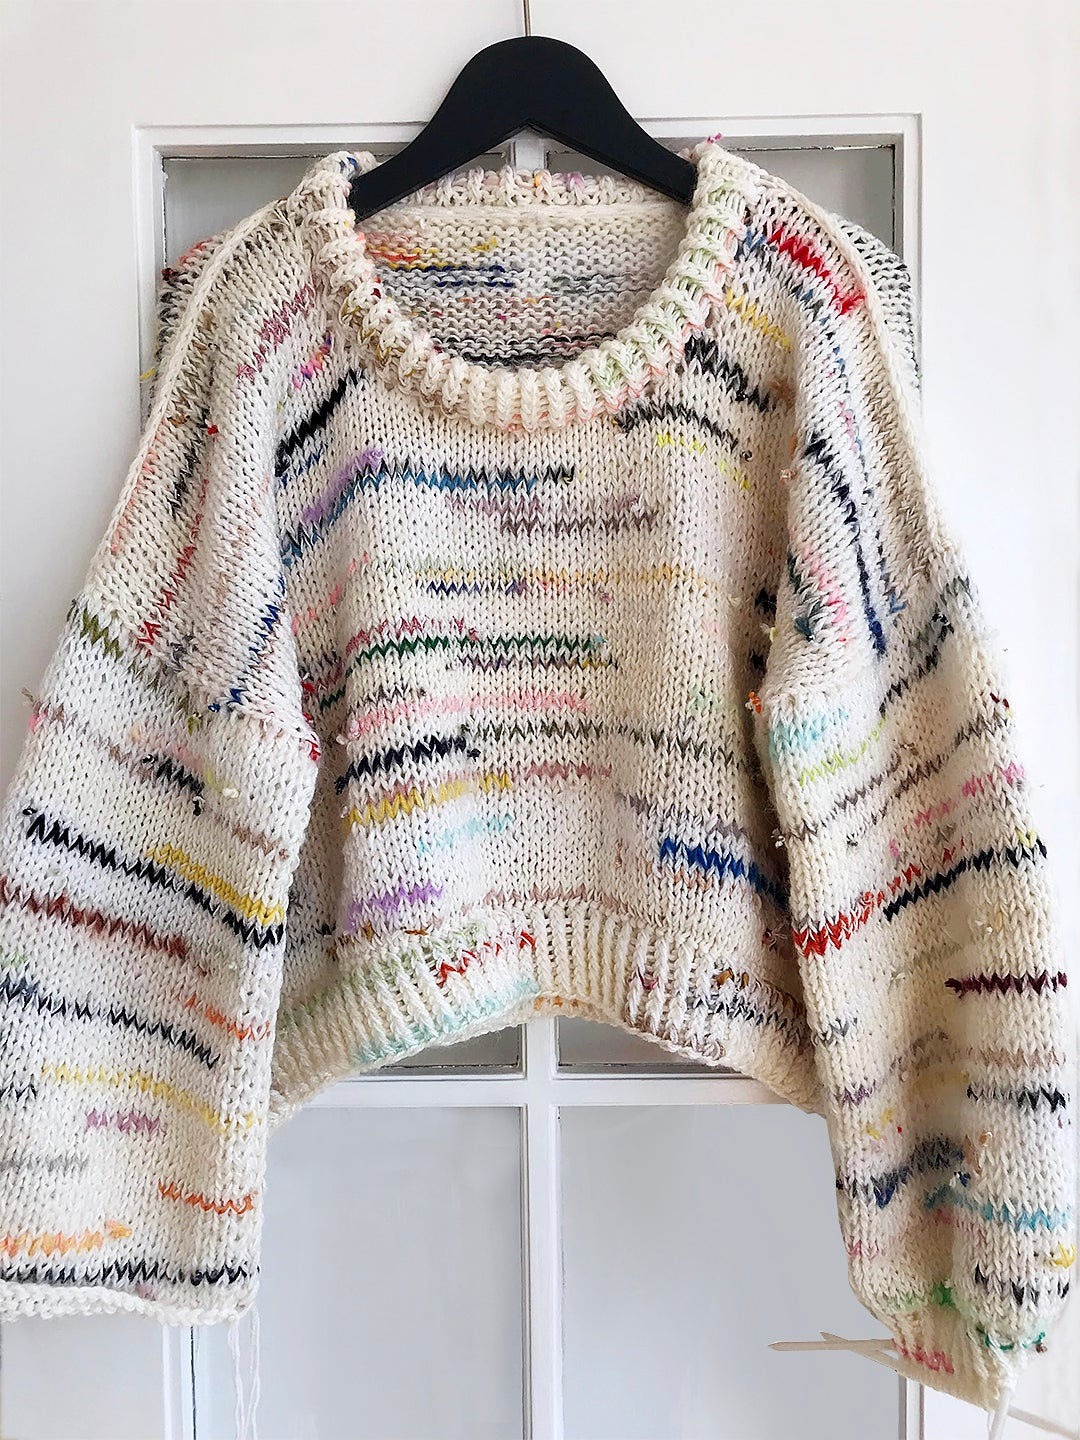 00-FEATURE-Laerke-Bagger-Alone-Together-Sweater-domino